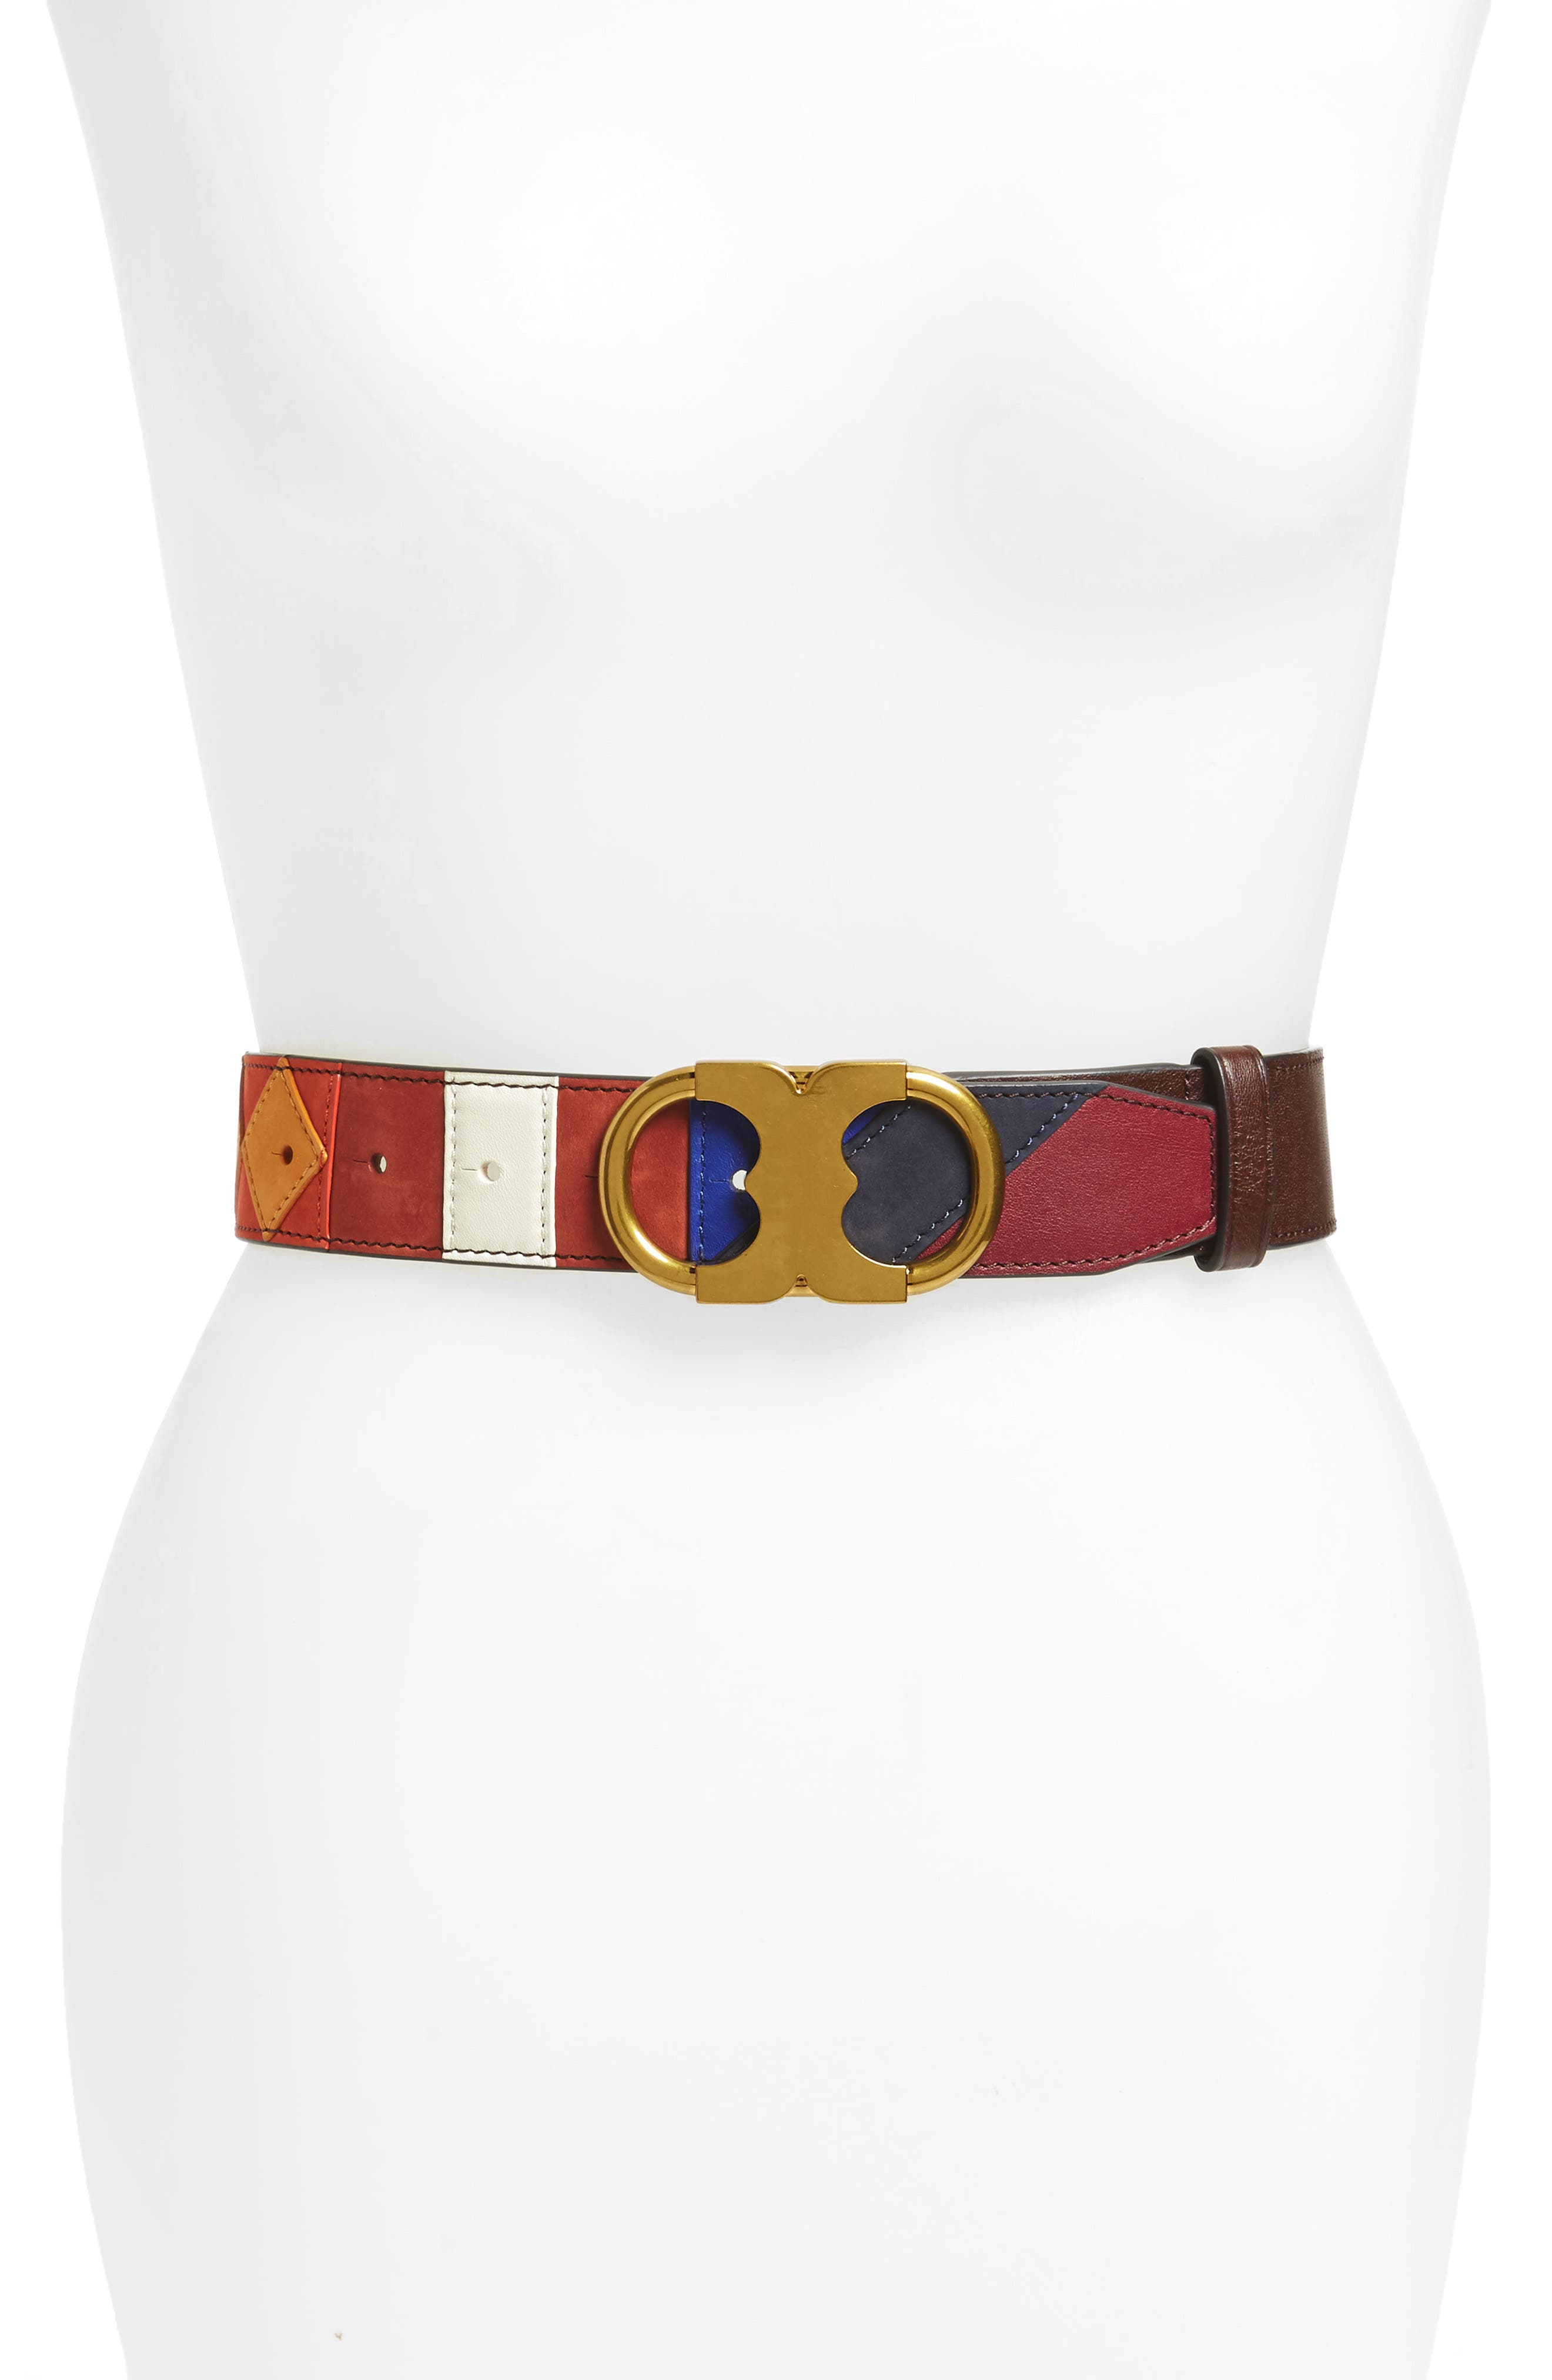 TORY BURCH Gemini Patchwork Leather Belt